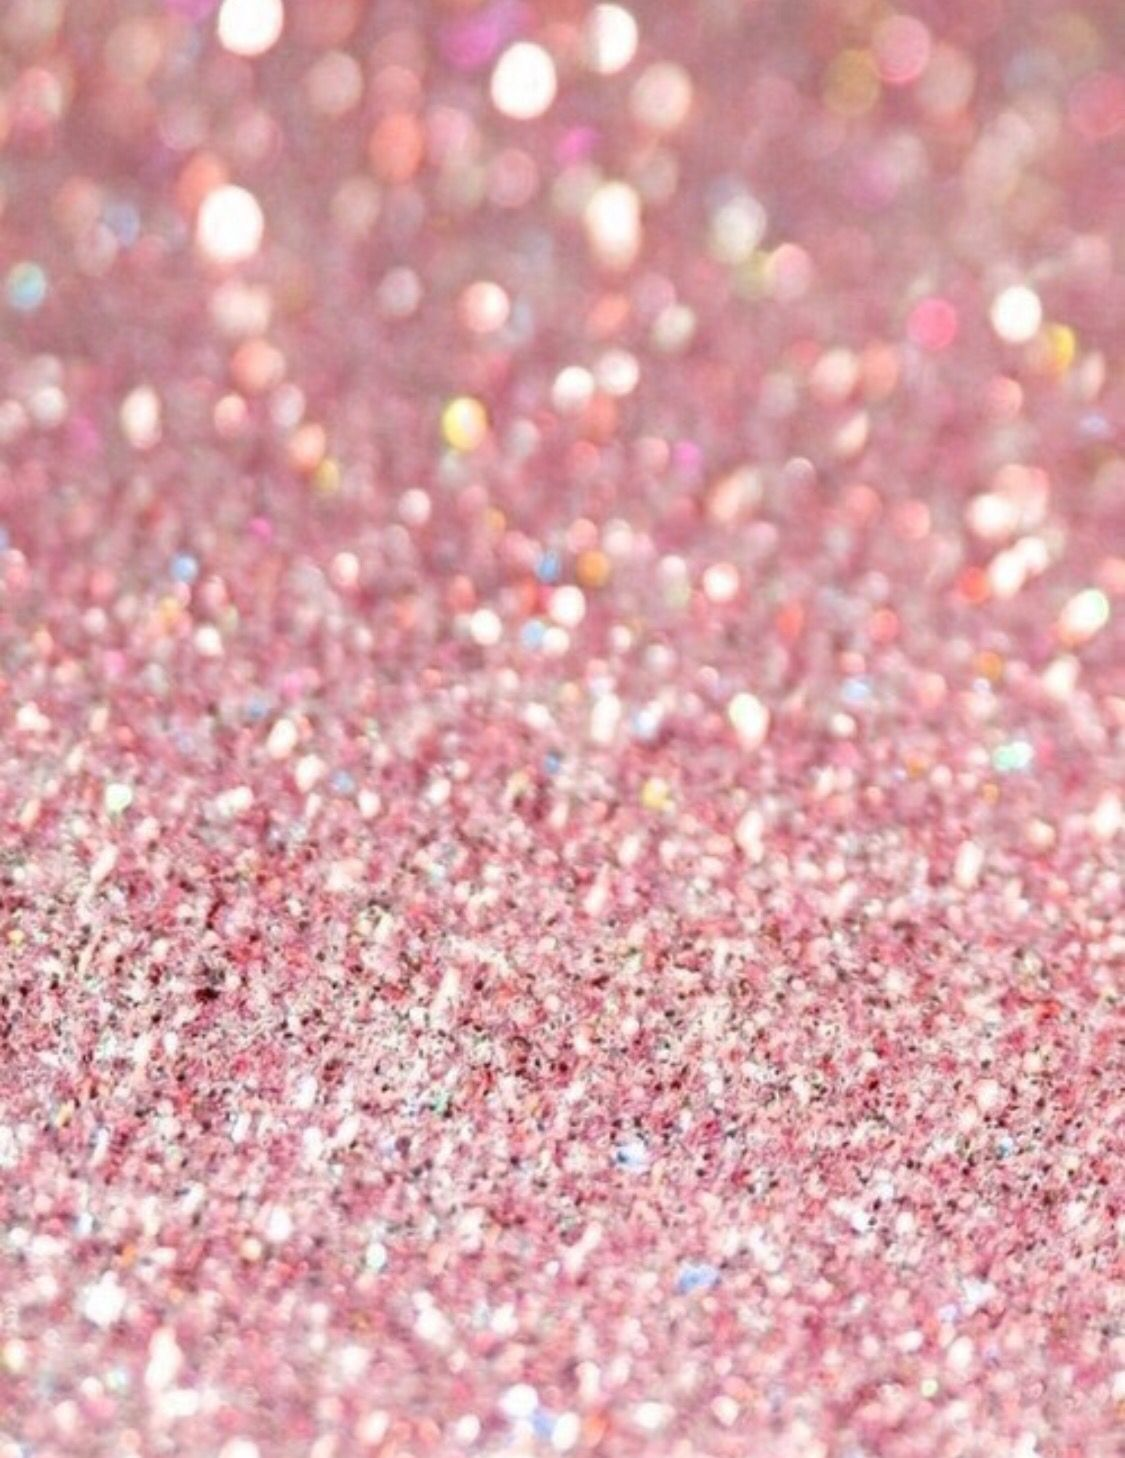 Pink sparkling gems background art stuff pinterest for Baby pink glitter wallpaper